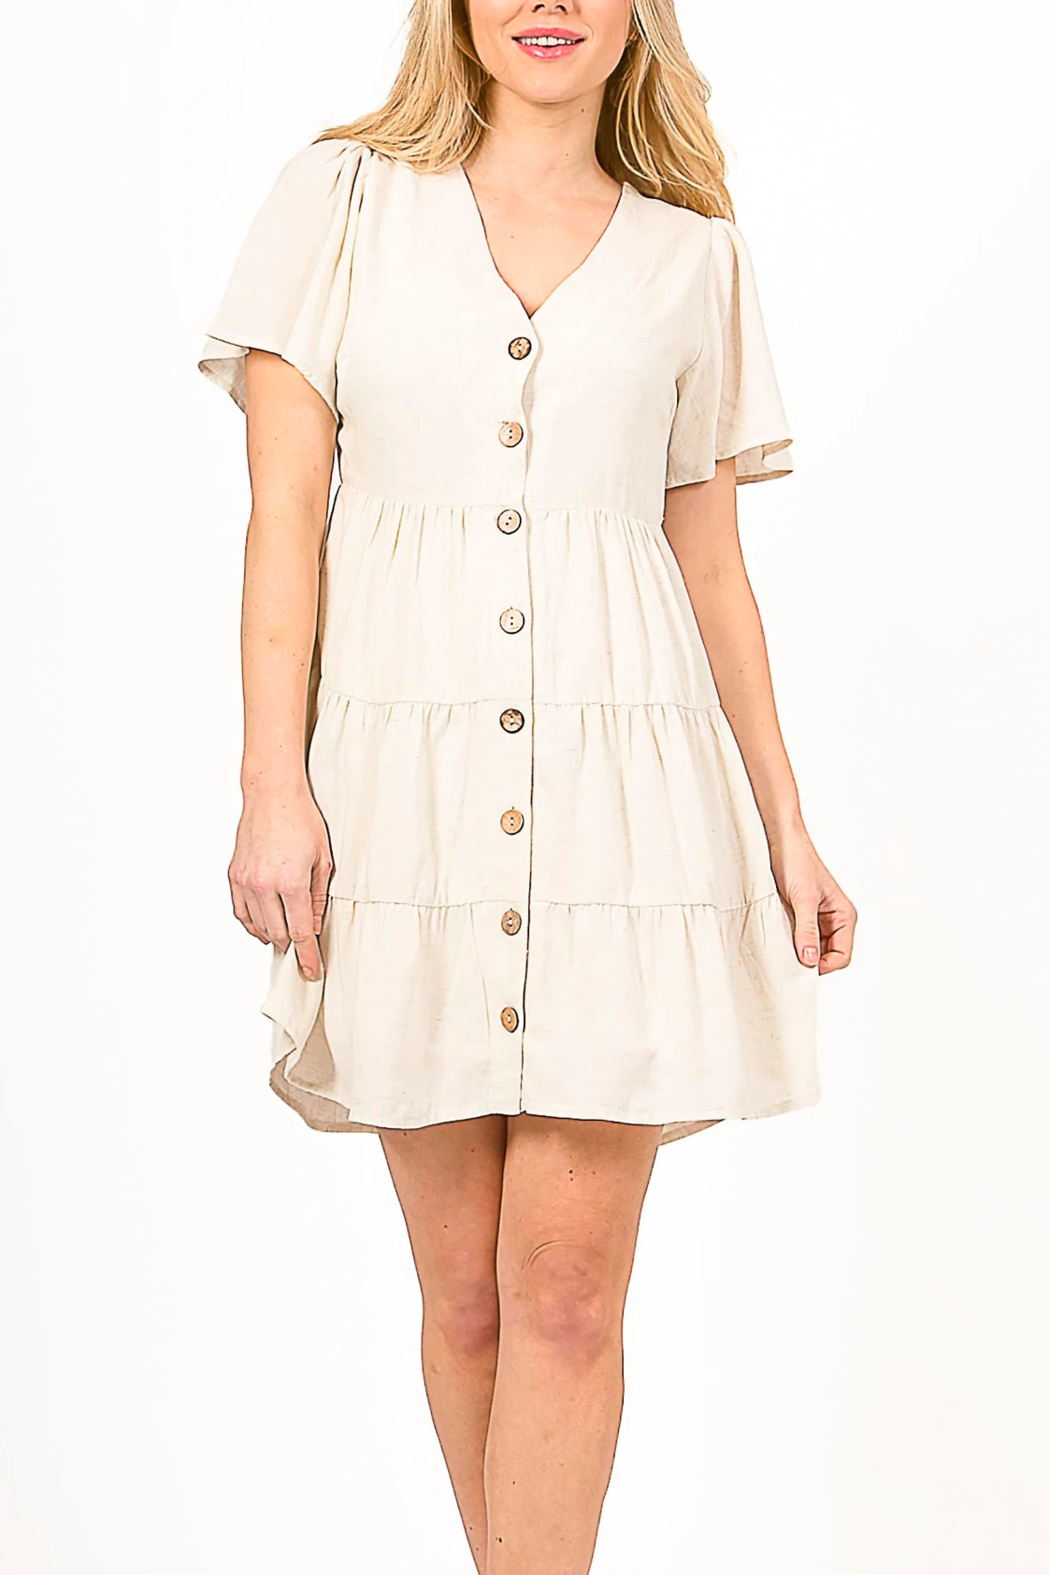 LoveRiche Lov Linen Dress - Front Cropped Image